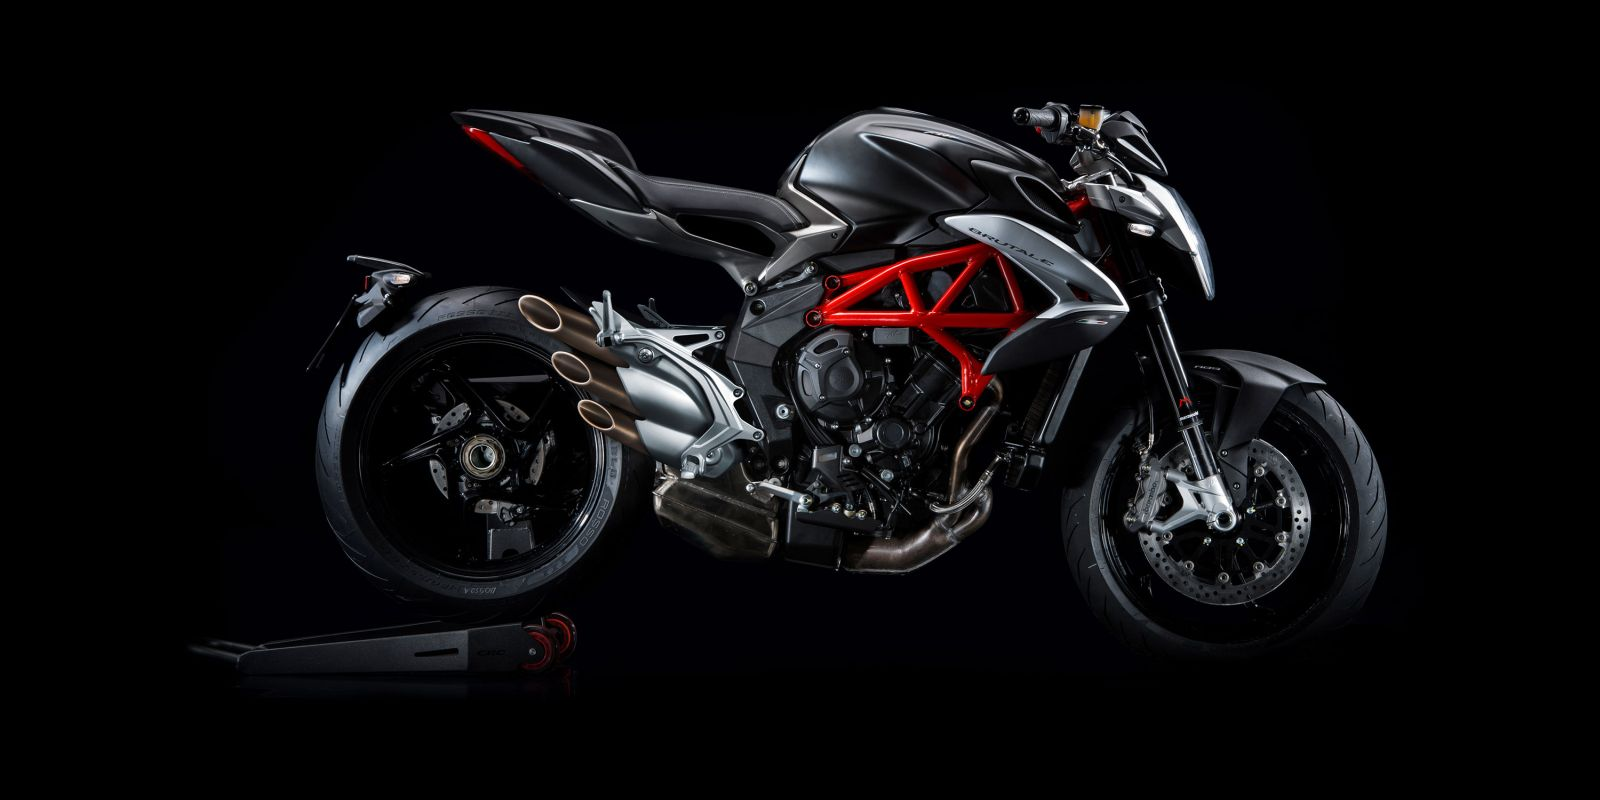 2017 mv agusta brutale 800 india launch likely in july motoroids. Black Bedroom Furniture Sets. Home Design Ideas